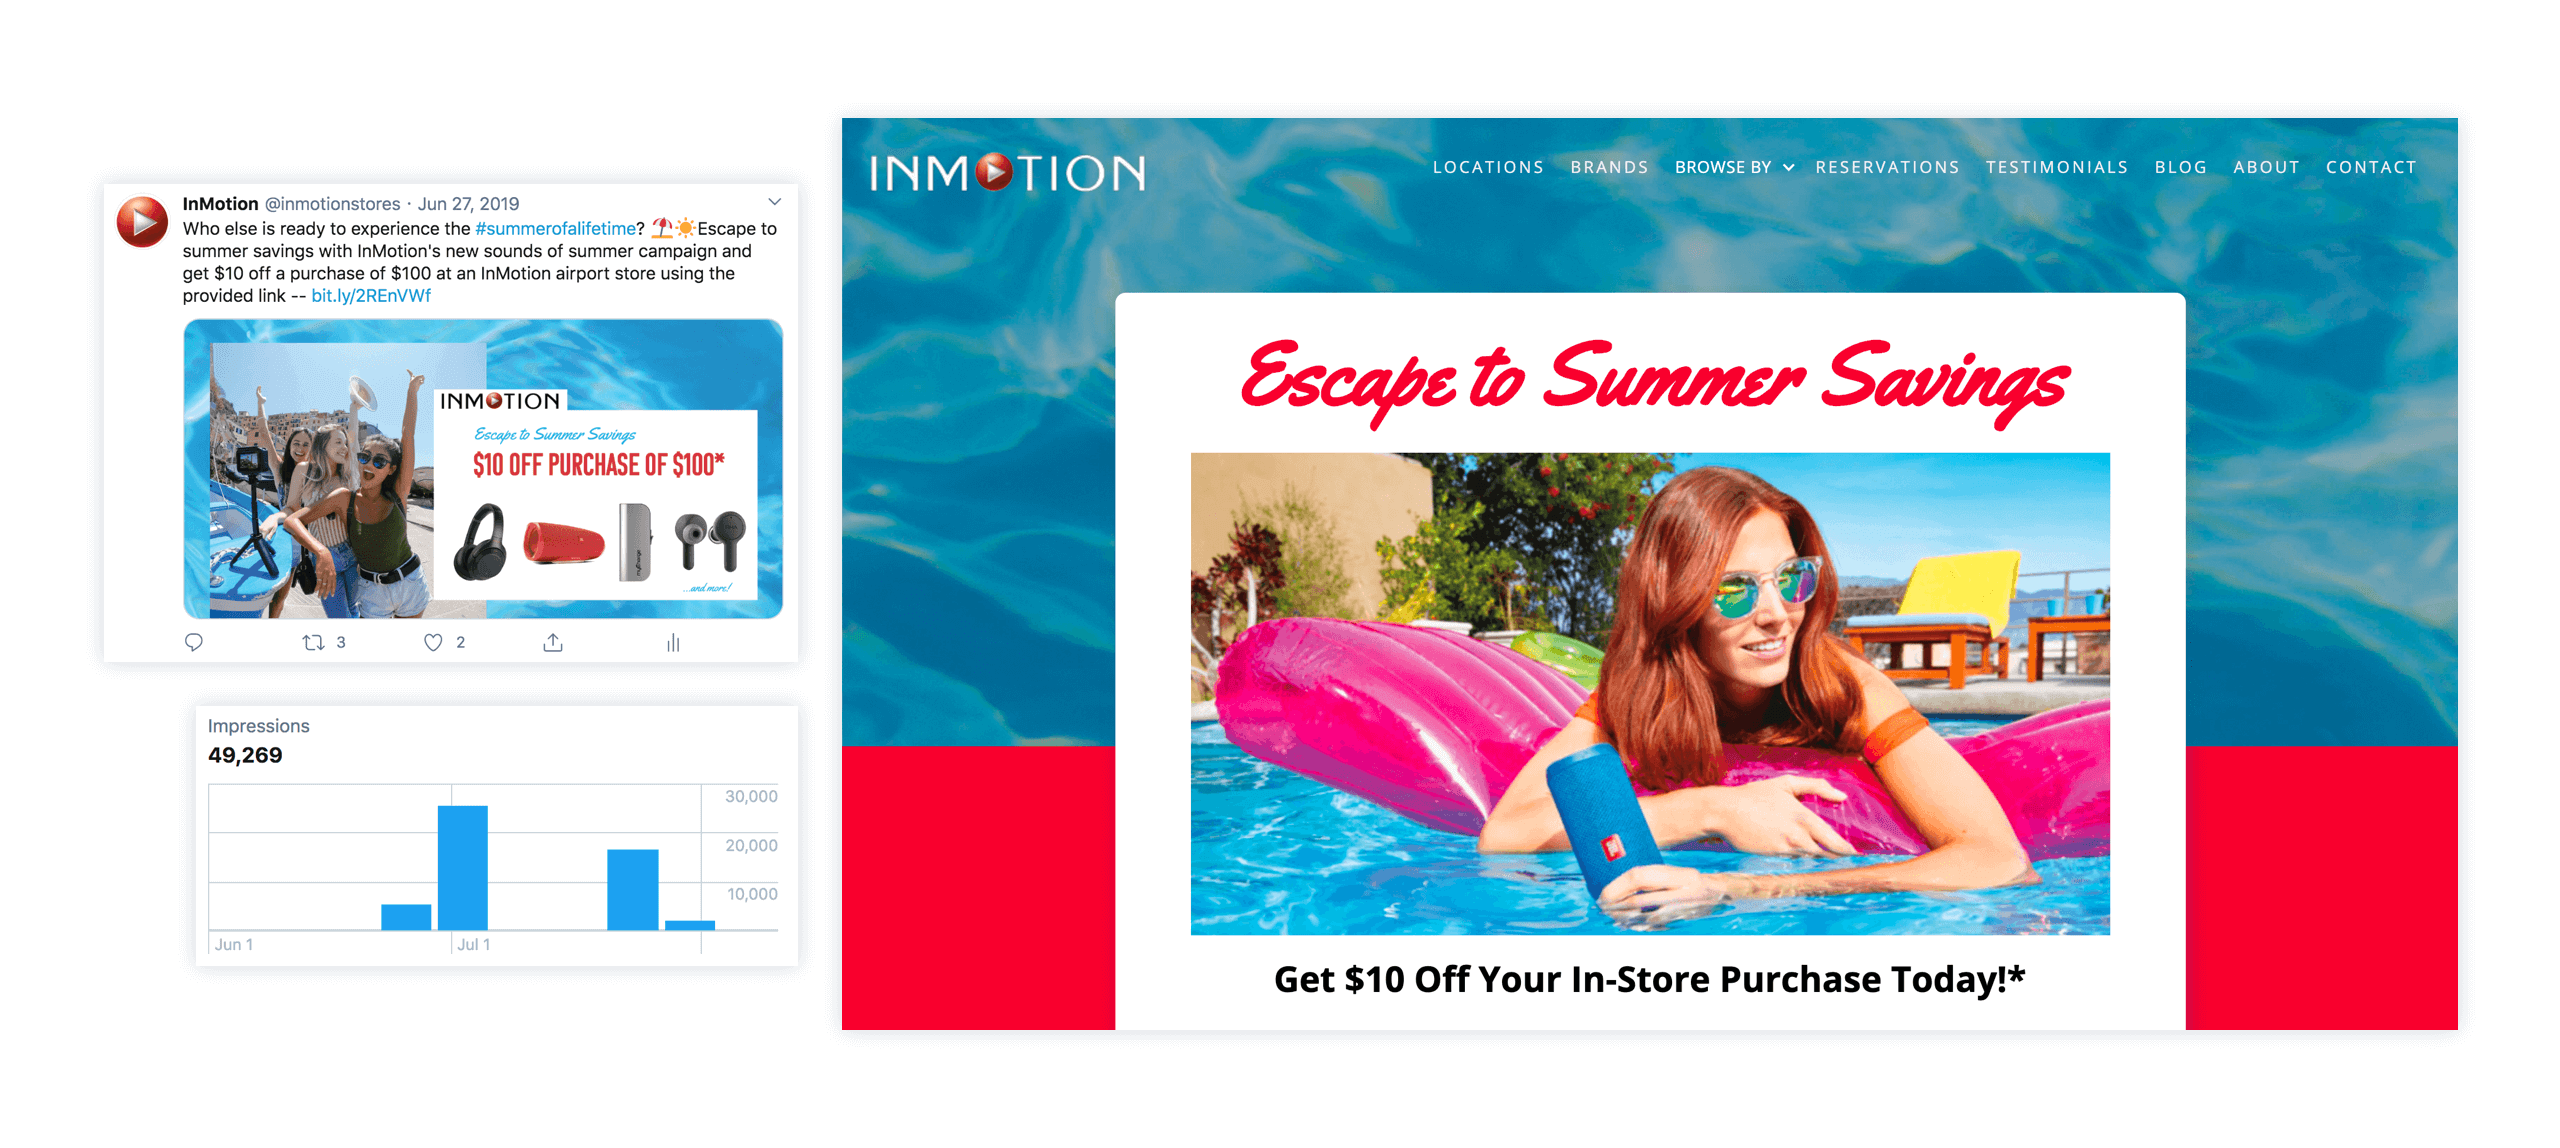 InMotion's Sounds of Summer Campaign